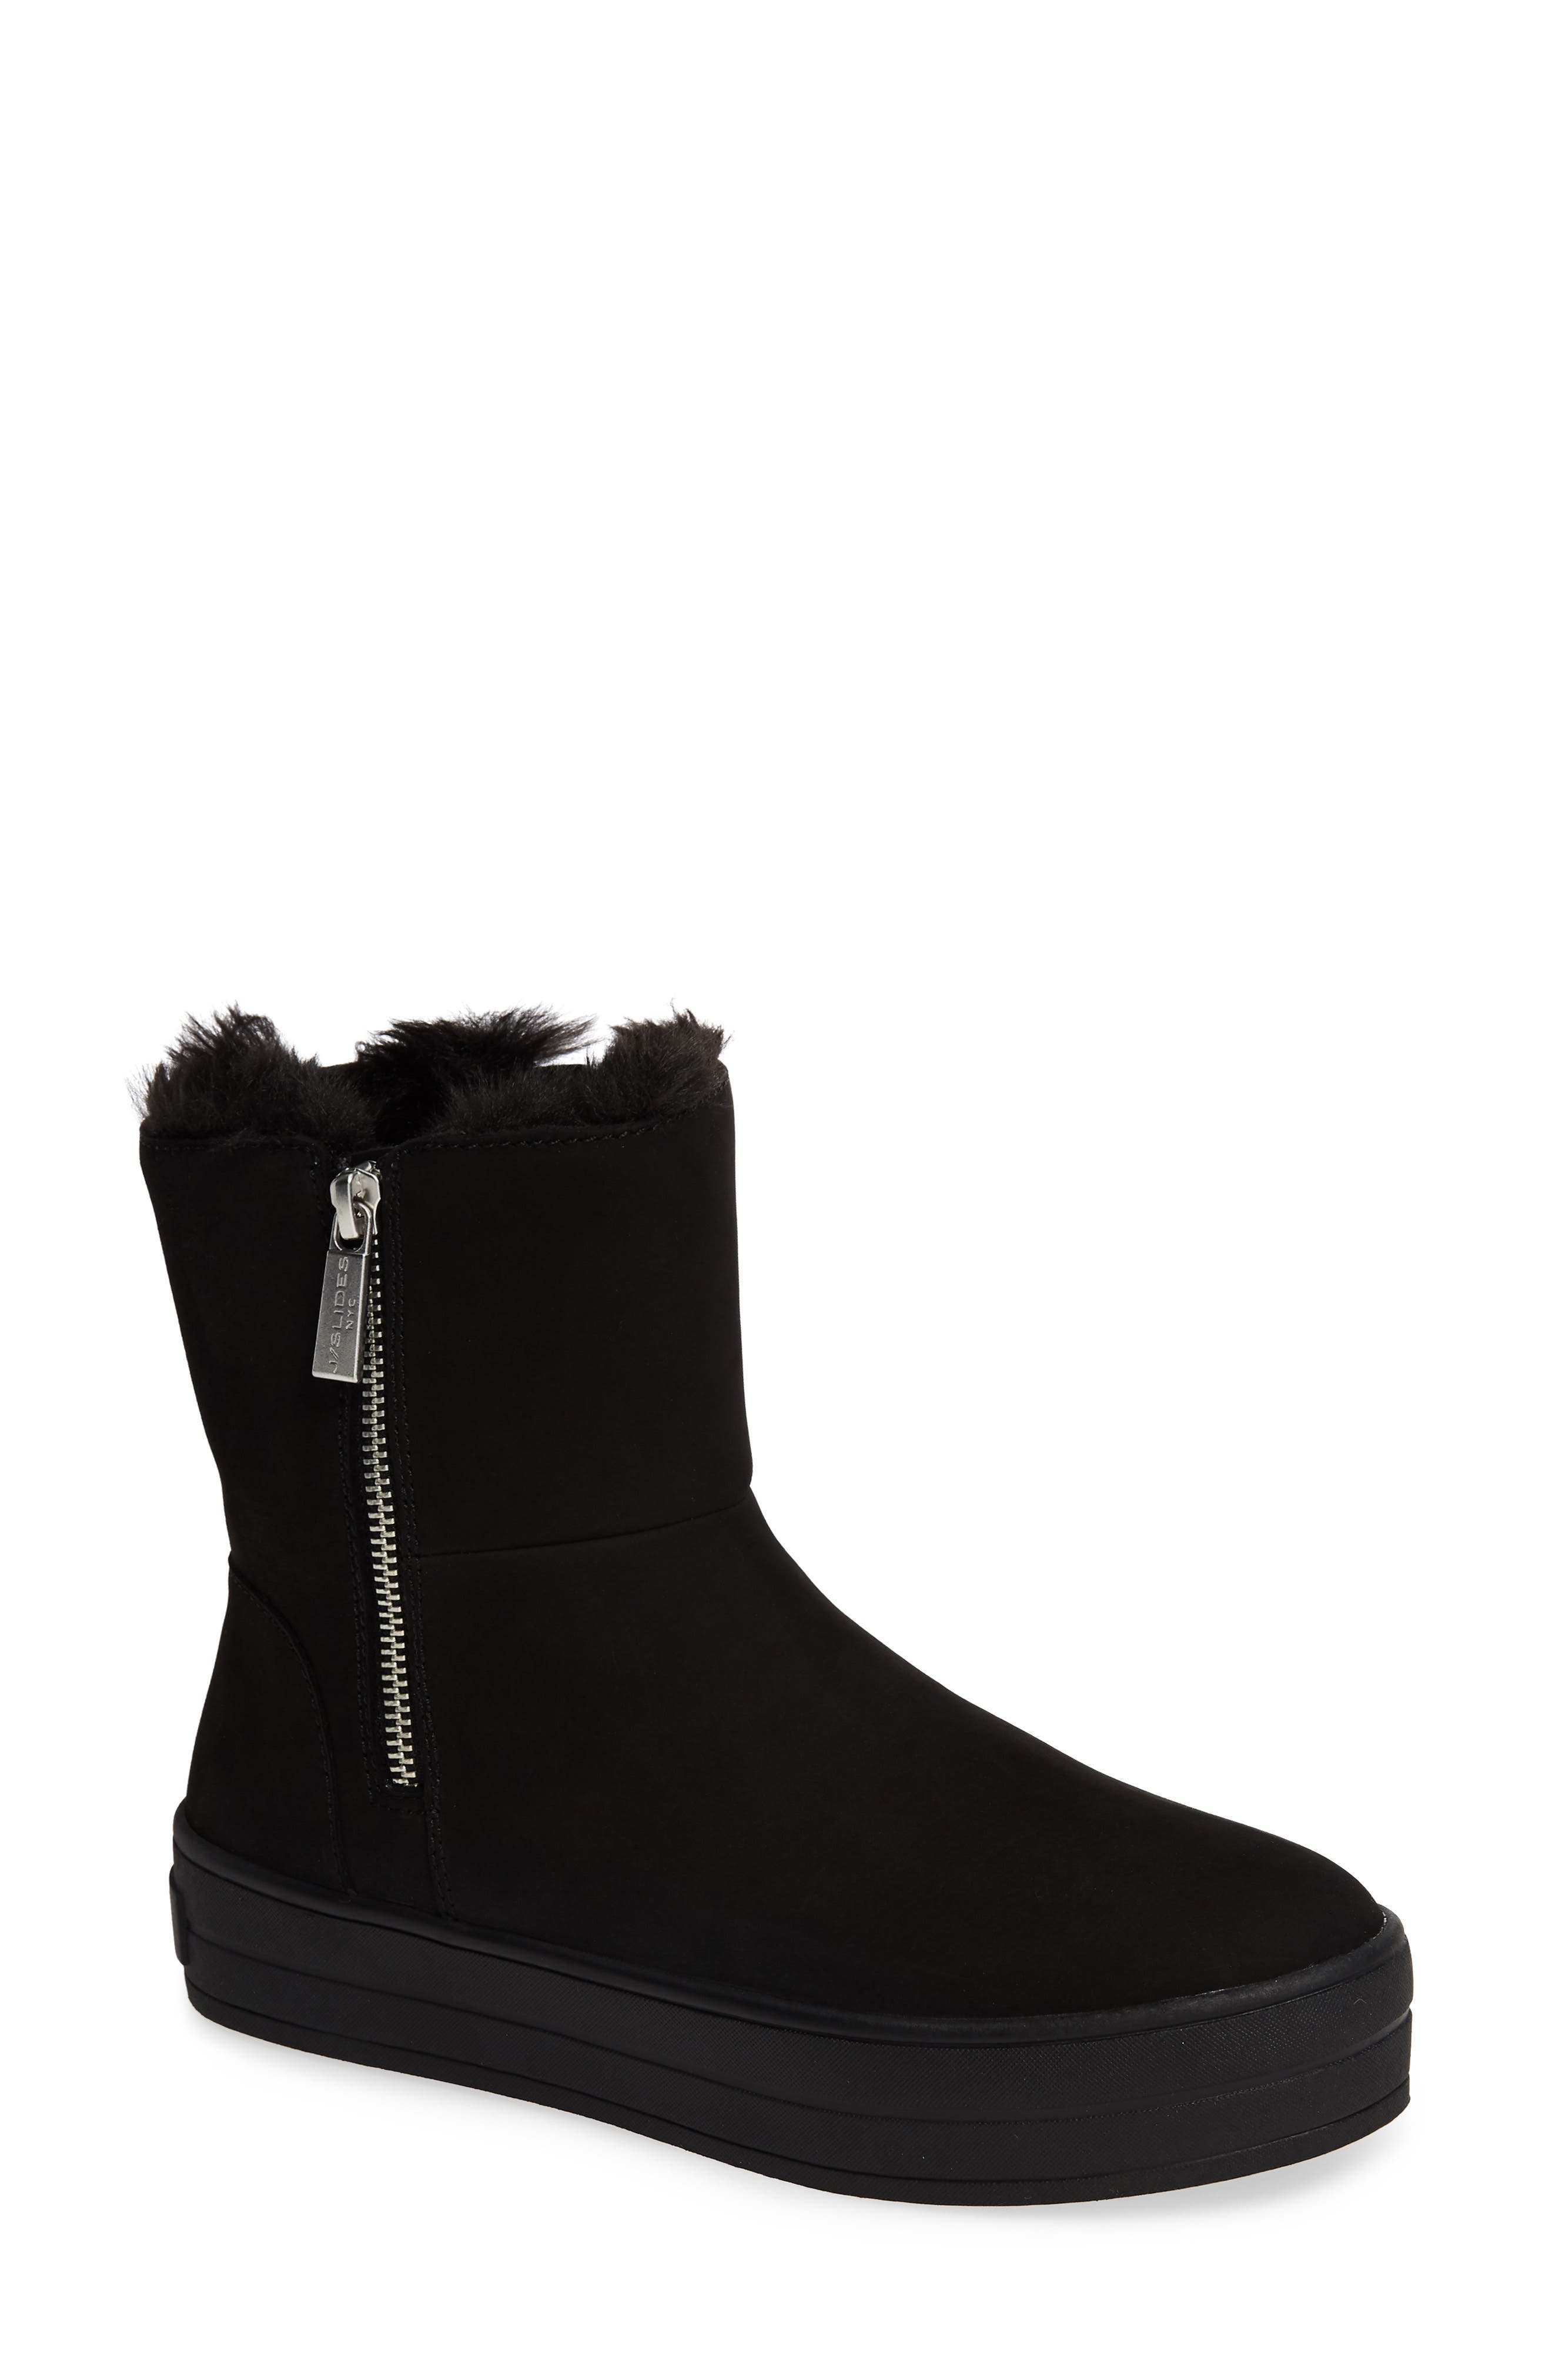 JSLIDES Henley Faux Fur Lined Bootie in Black Nubuck